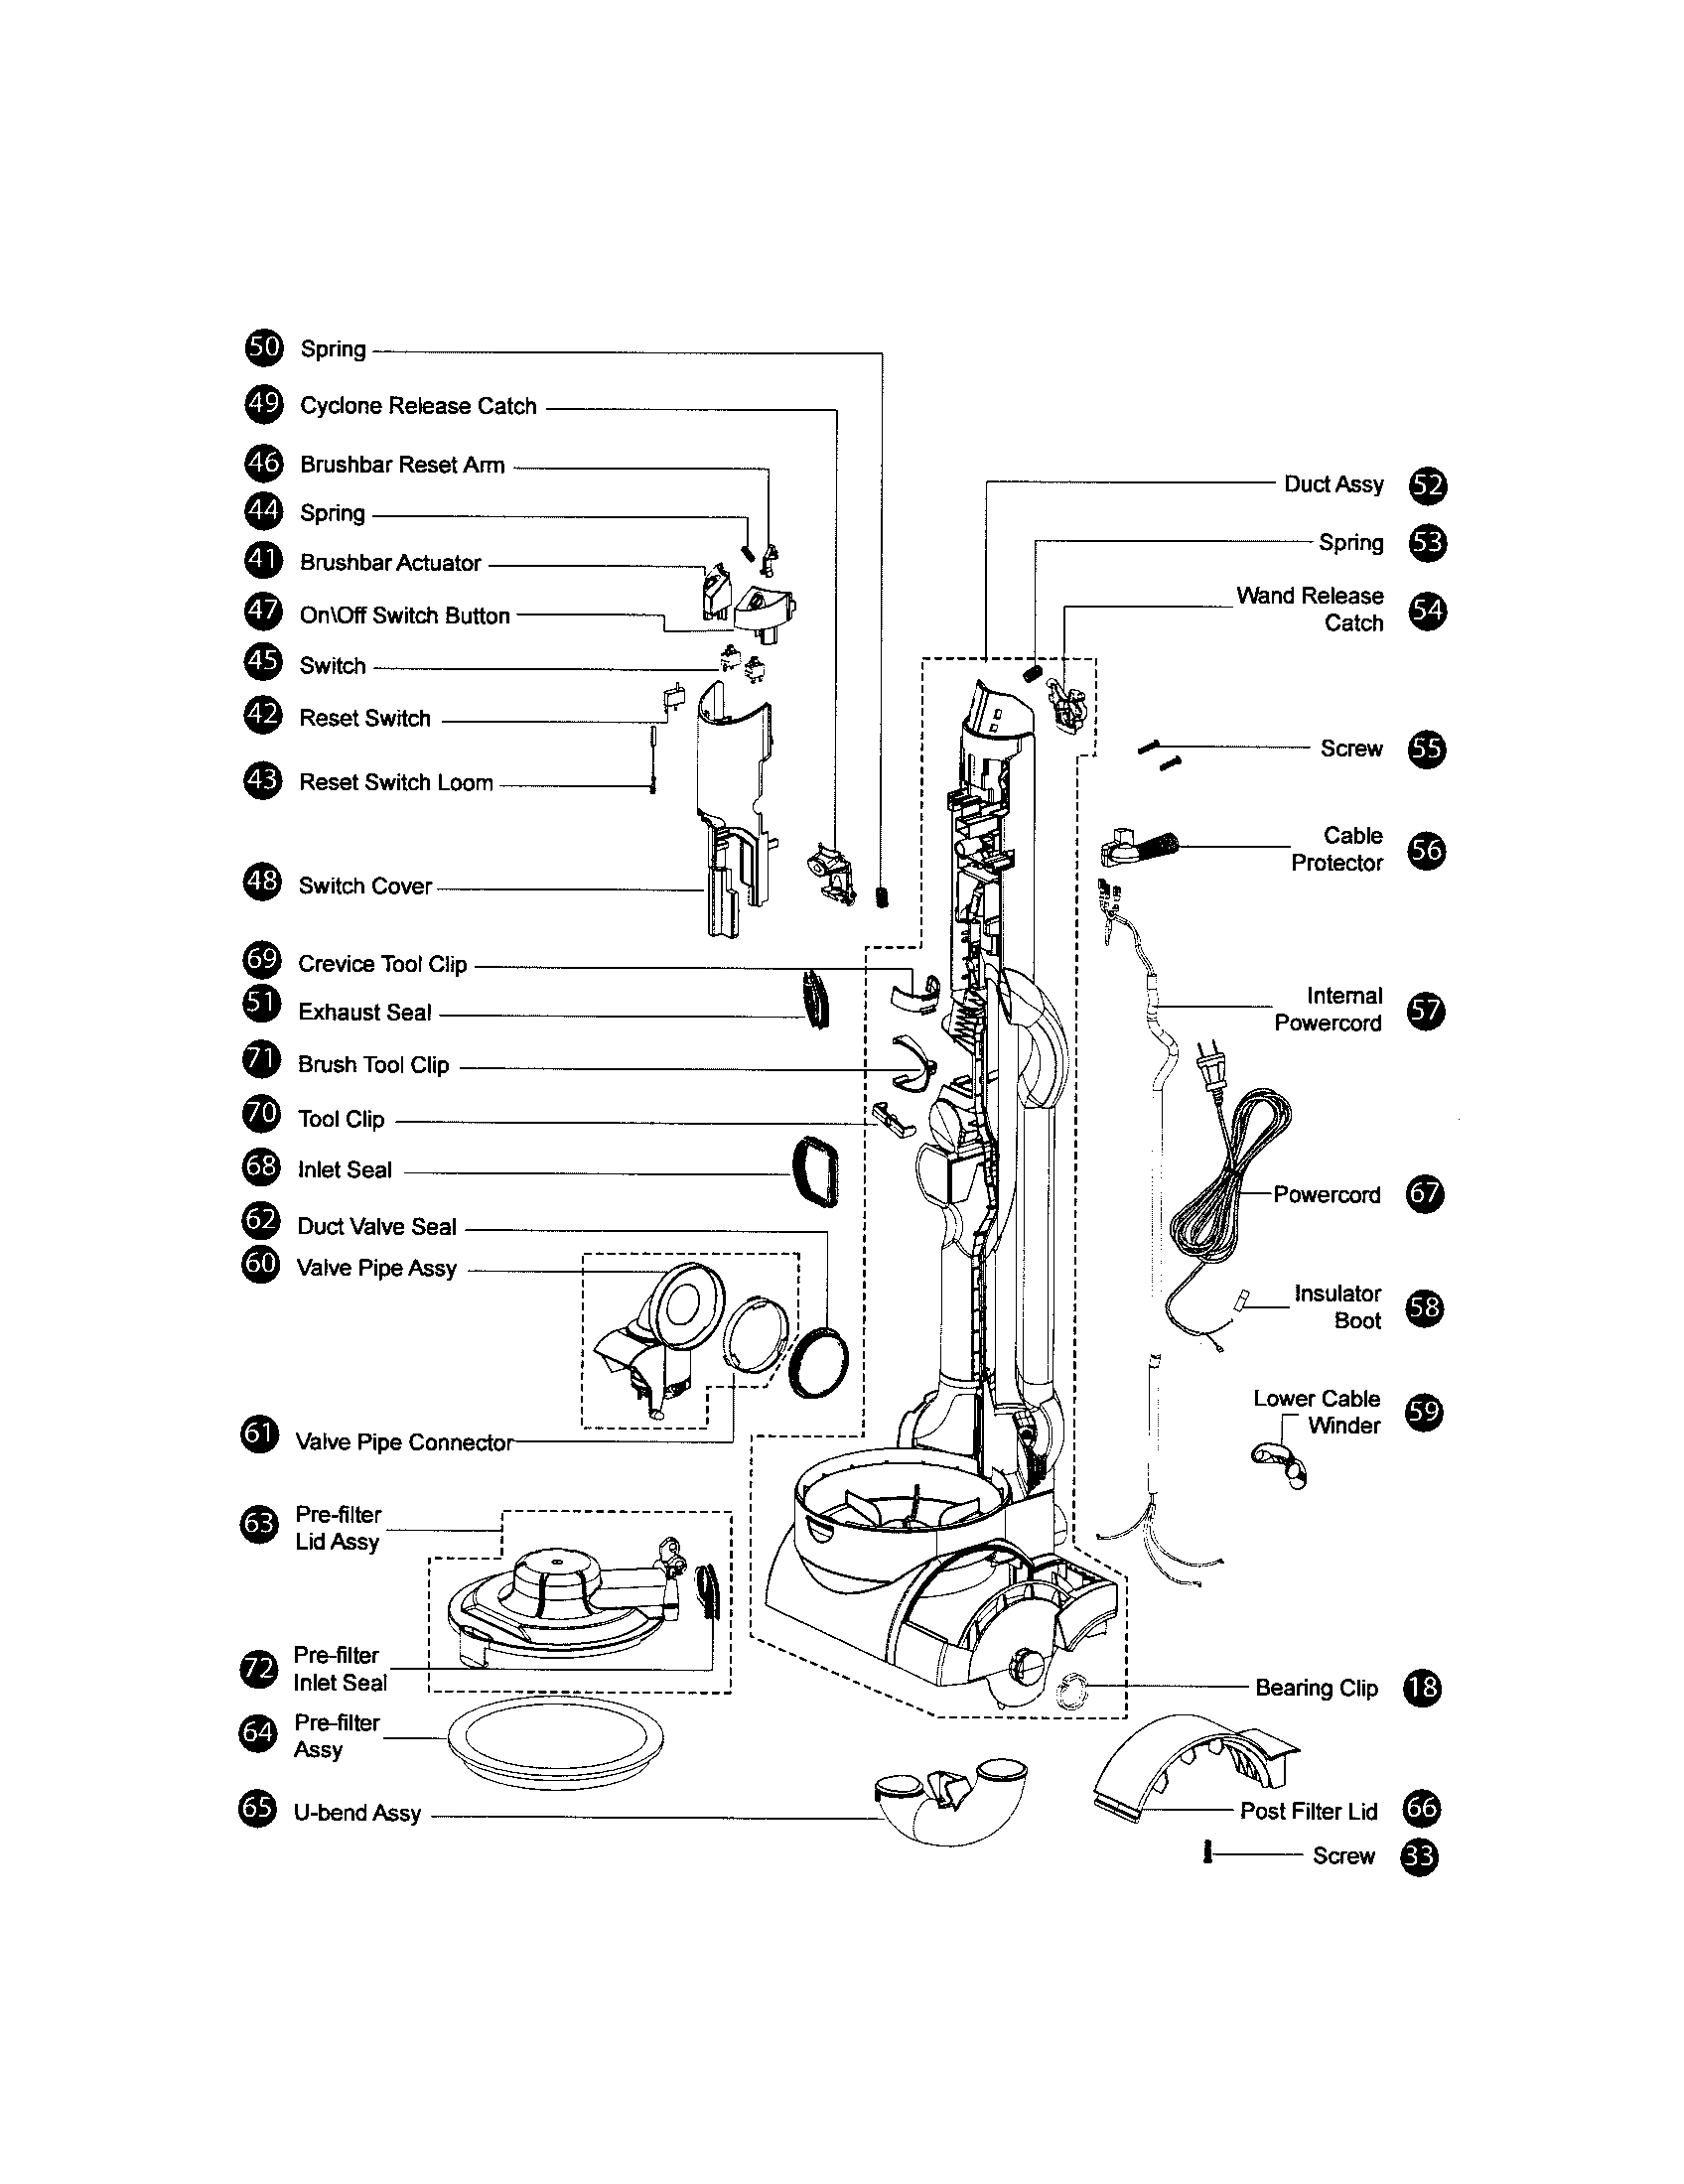 Vacuum Parts: Dyson Animal Vacuum Parts